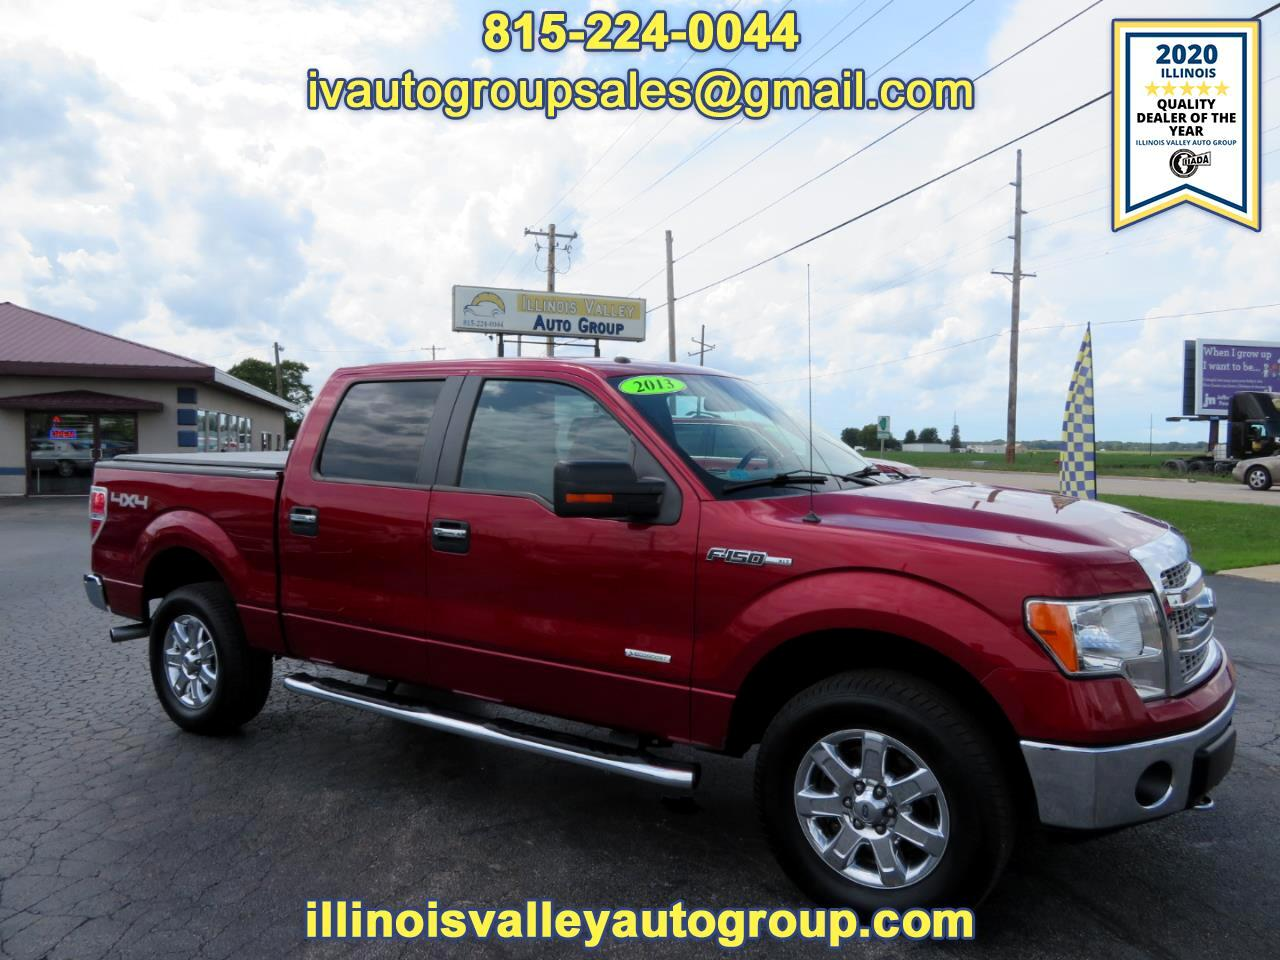 Ford F-150 XLT SuperCrew Short Bed 4WD 2013